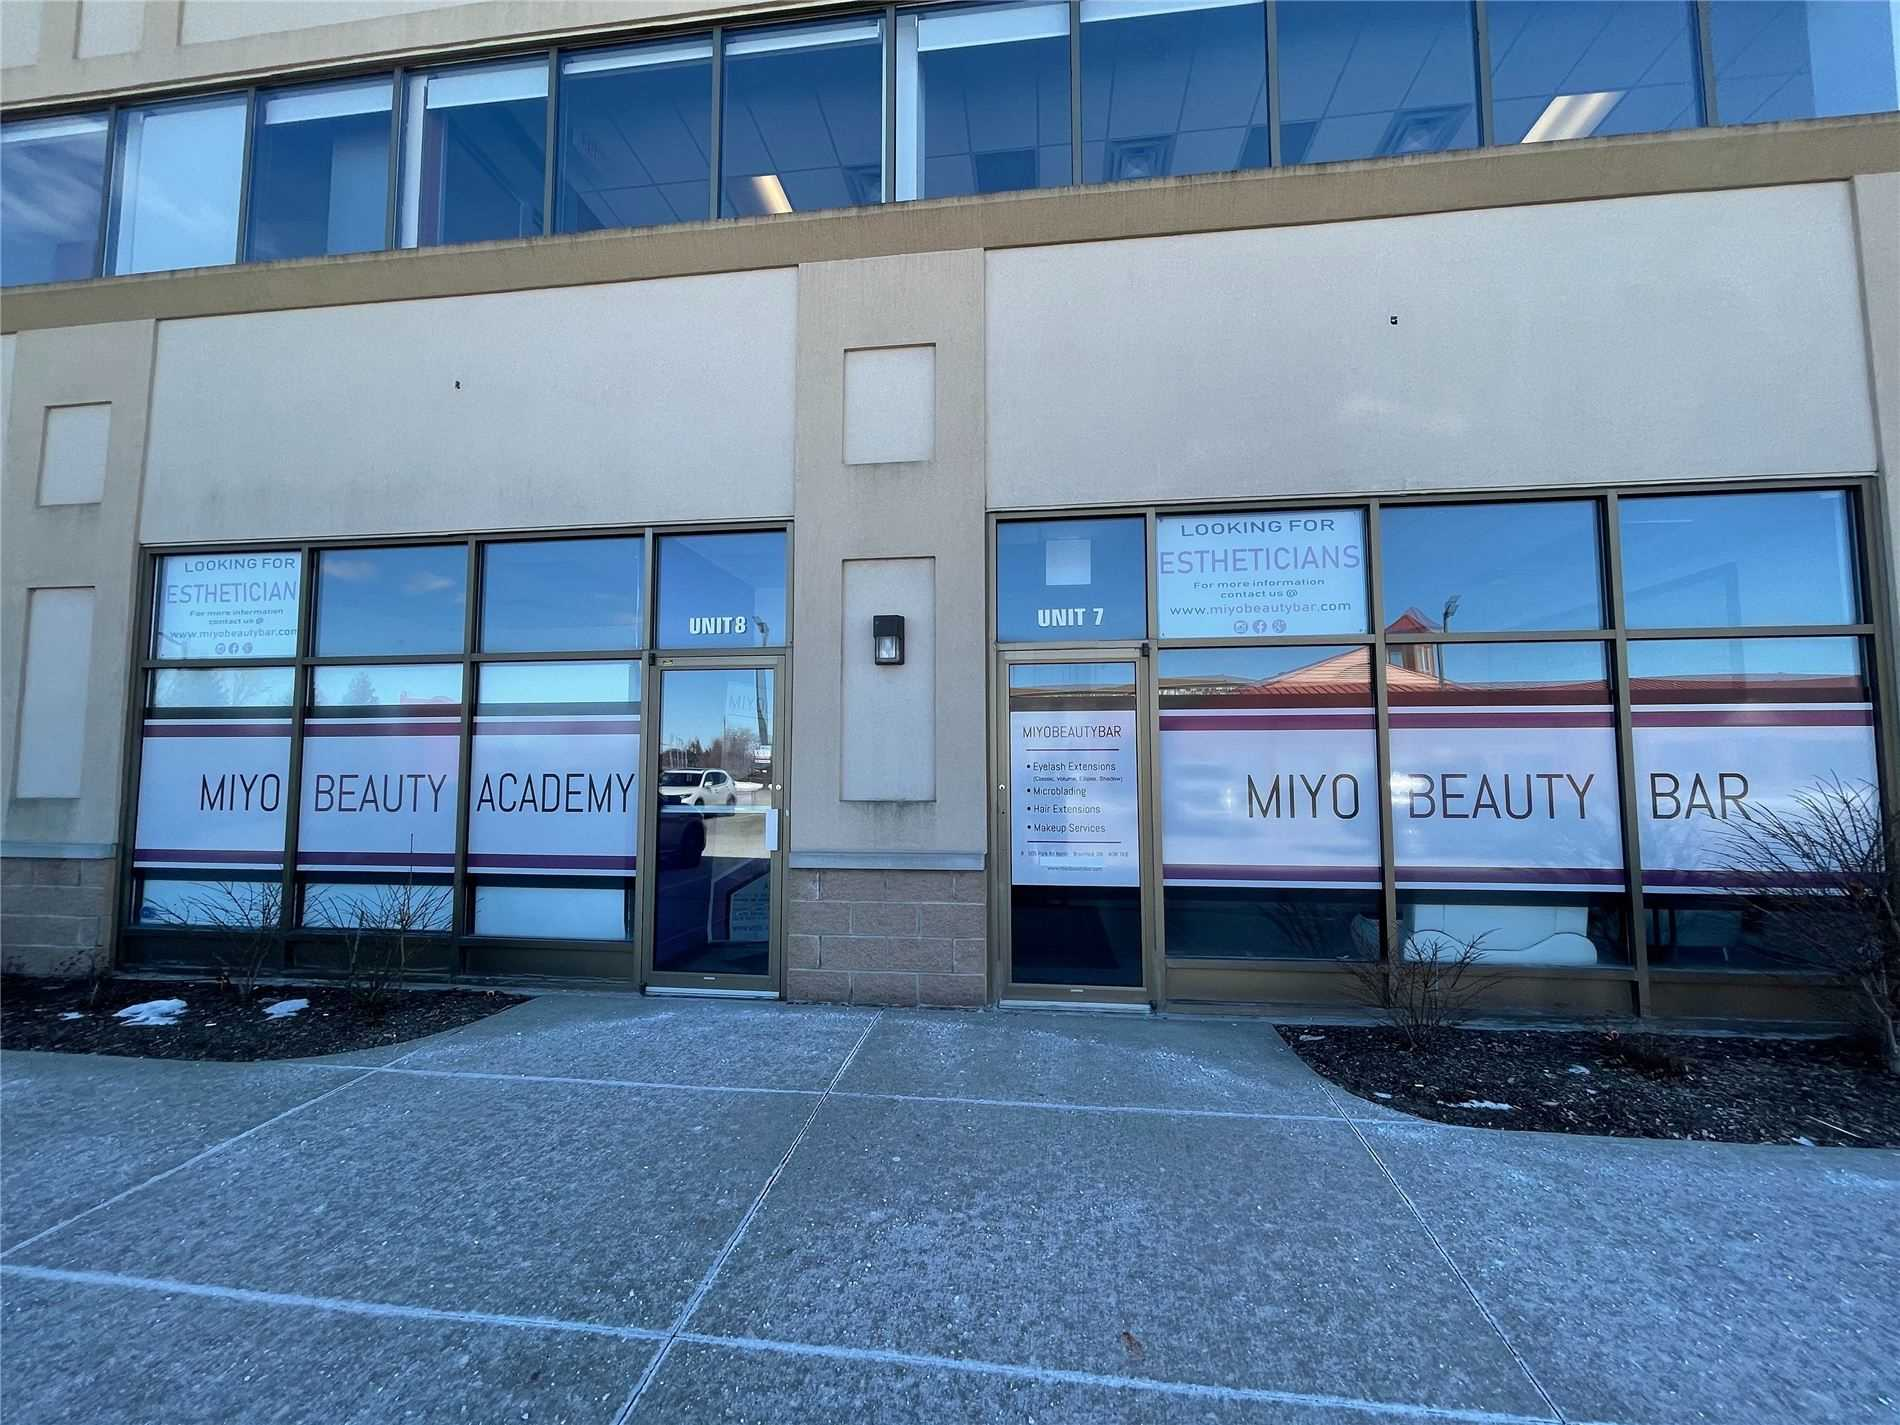 Commercial/retail For Lease In Brant , ,Commercial/retail,For Lease,107-108,Park